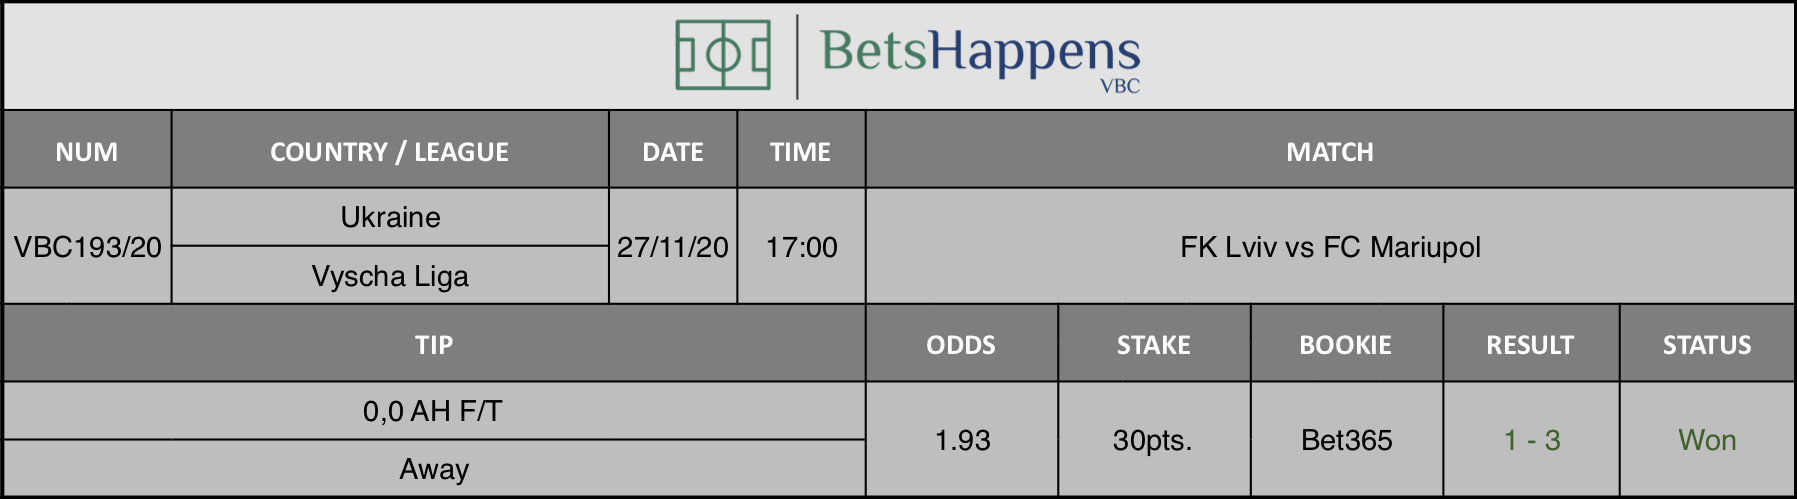 Results of our tip for the FK Lviv vs FC Mariupol match where 0,0 AH F/T  Away is recommended.